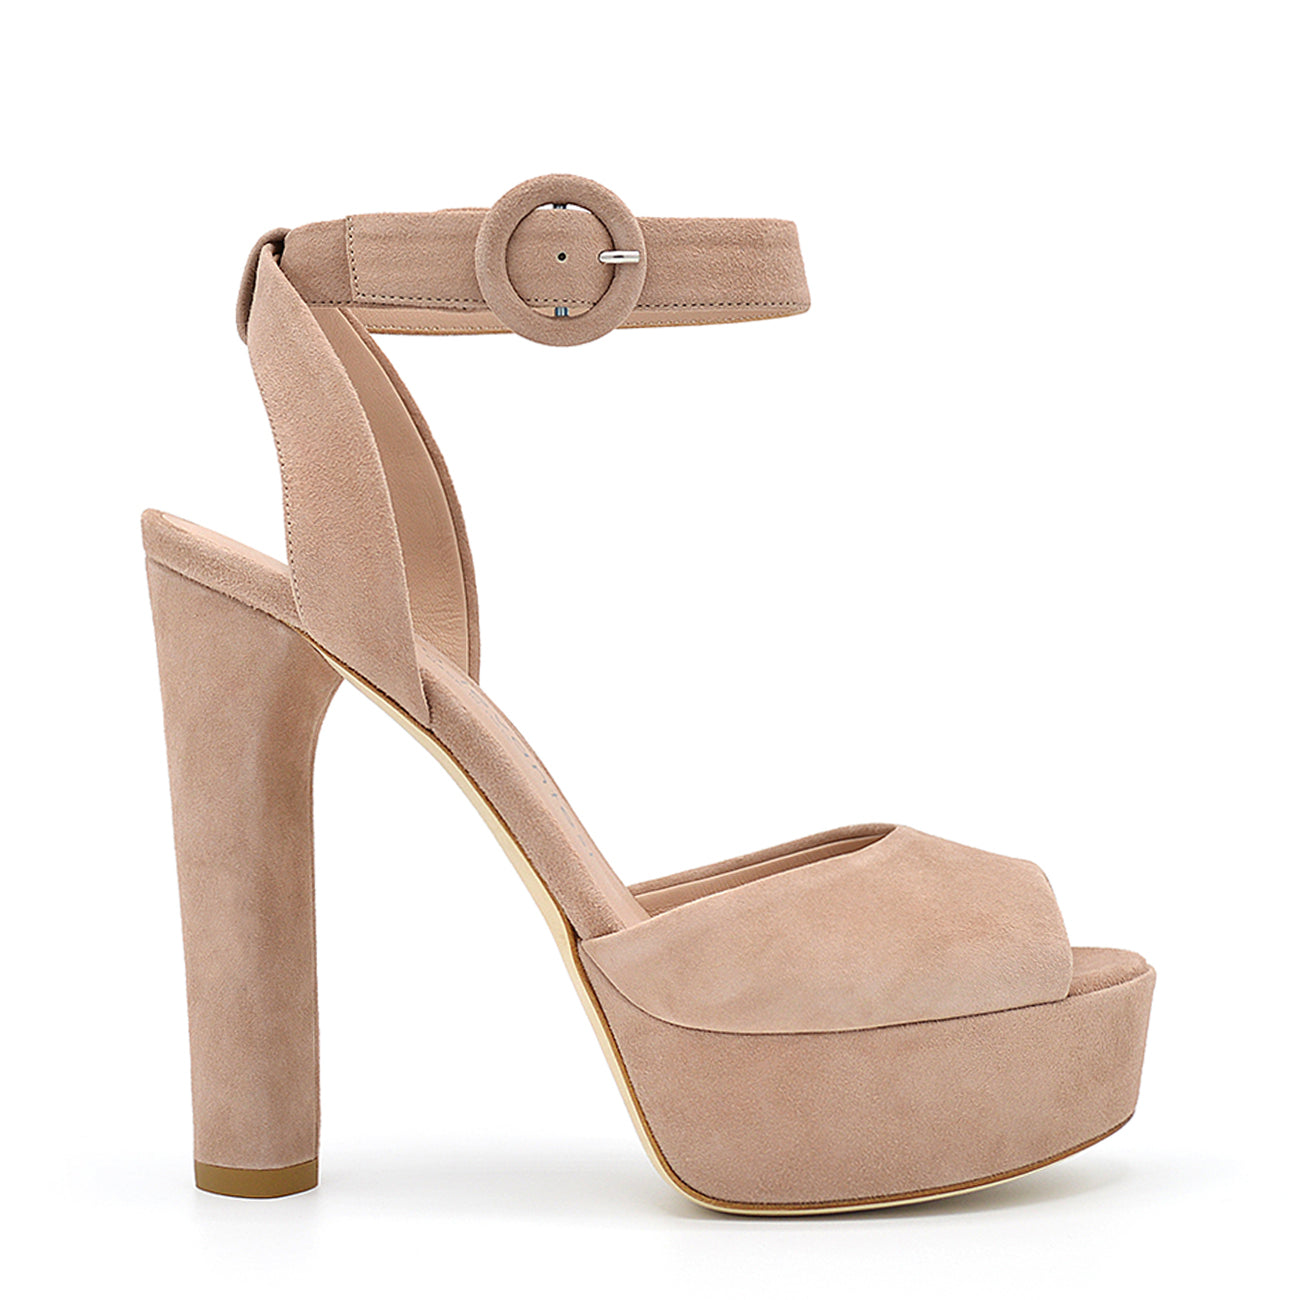 Viky. <br> High-heel natural suede platform sandals